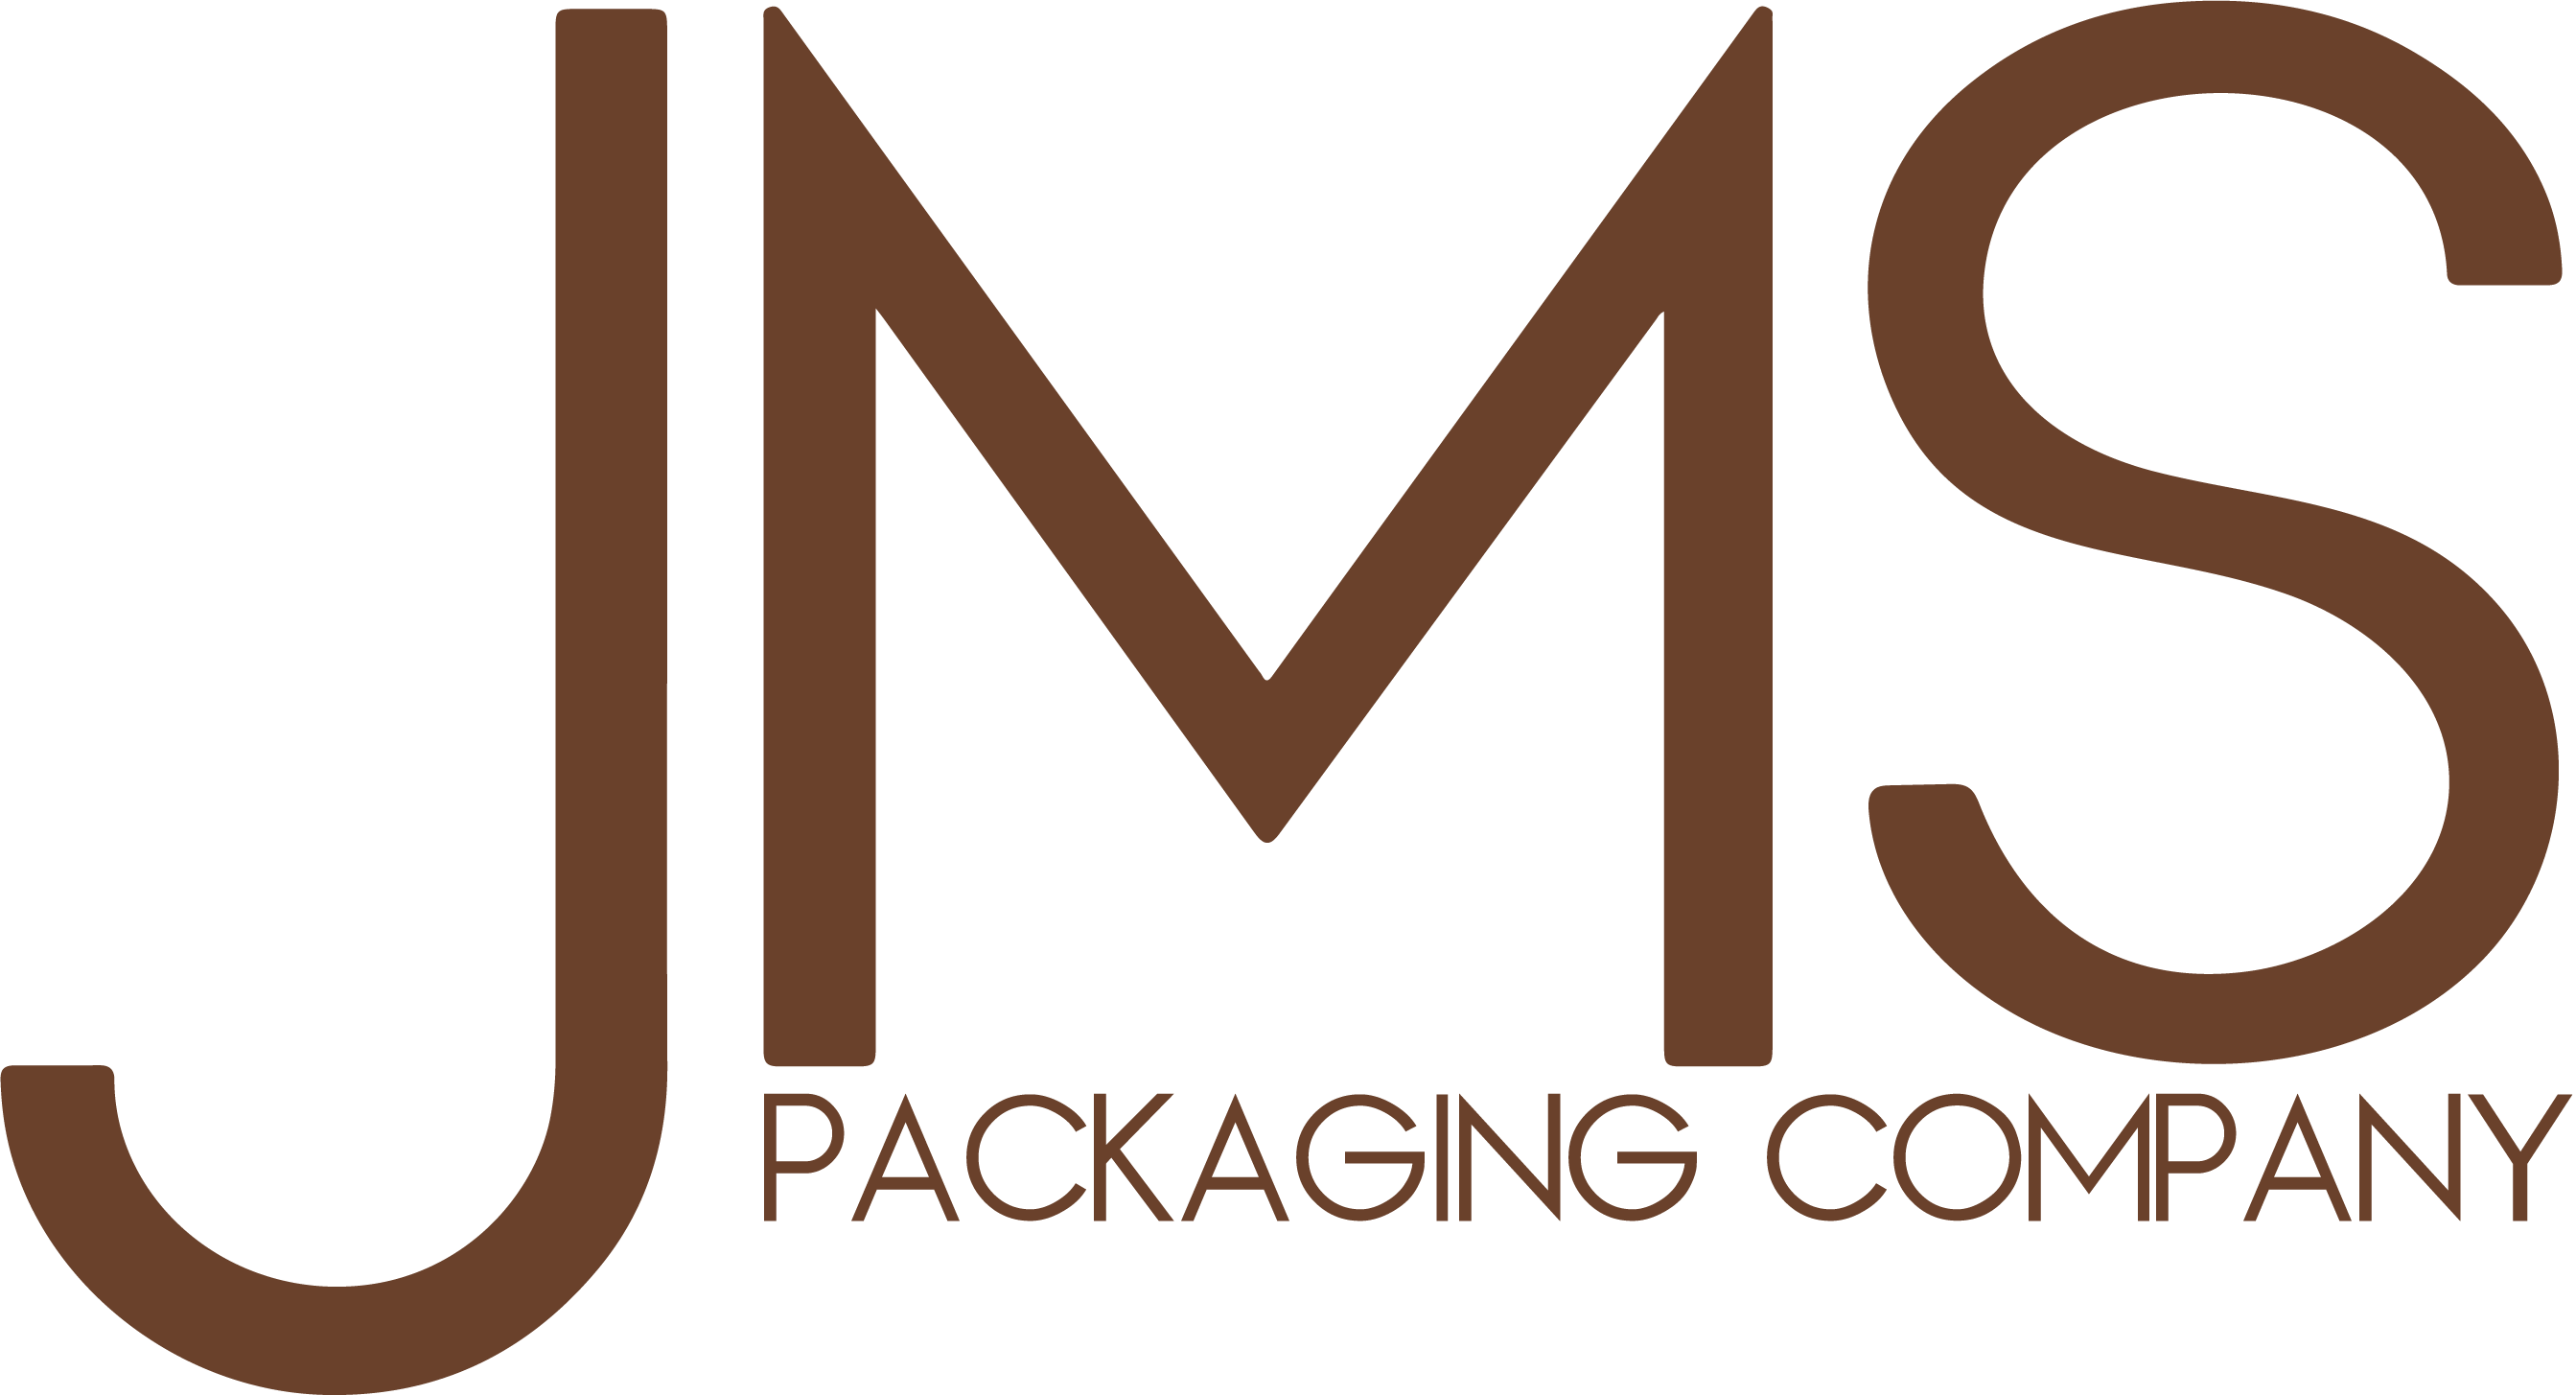 Logo JMS Packaging Company